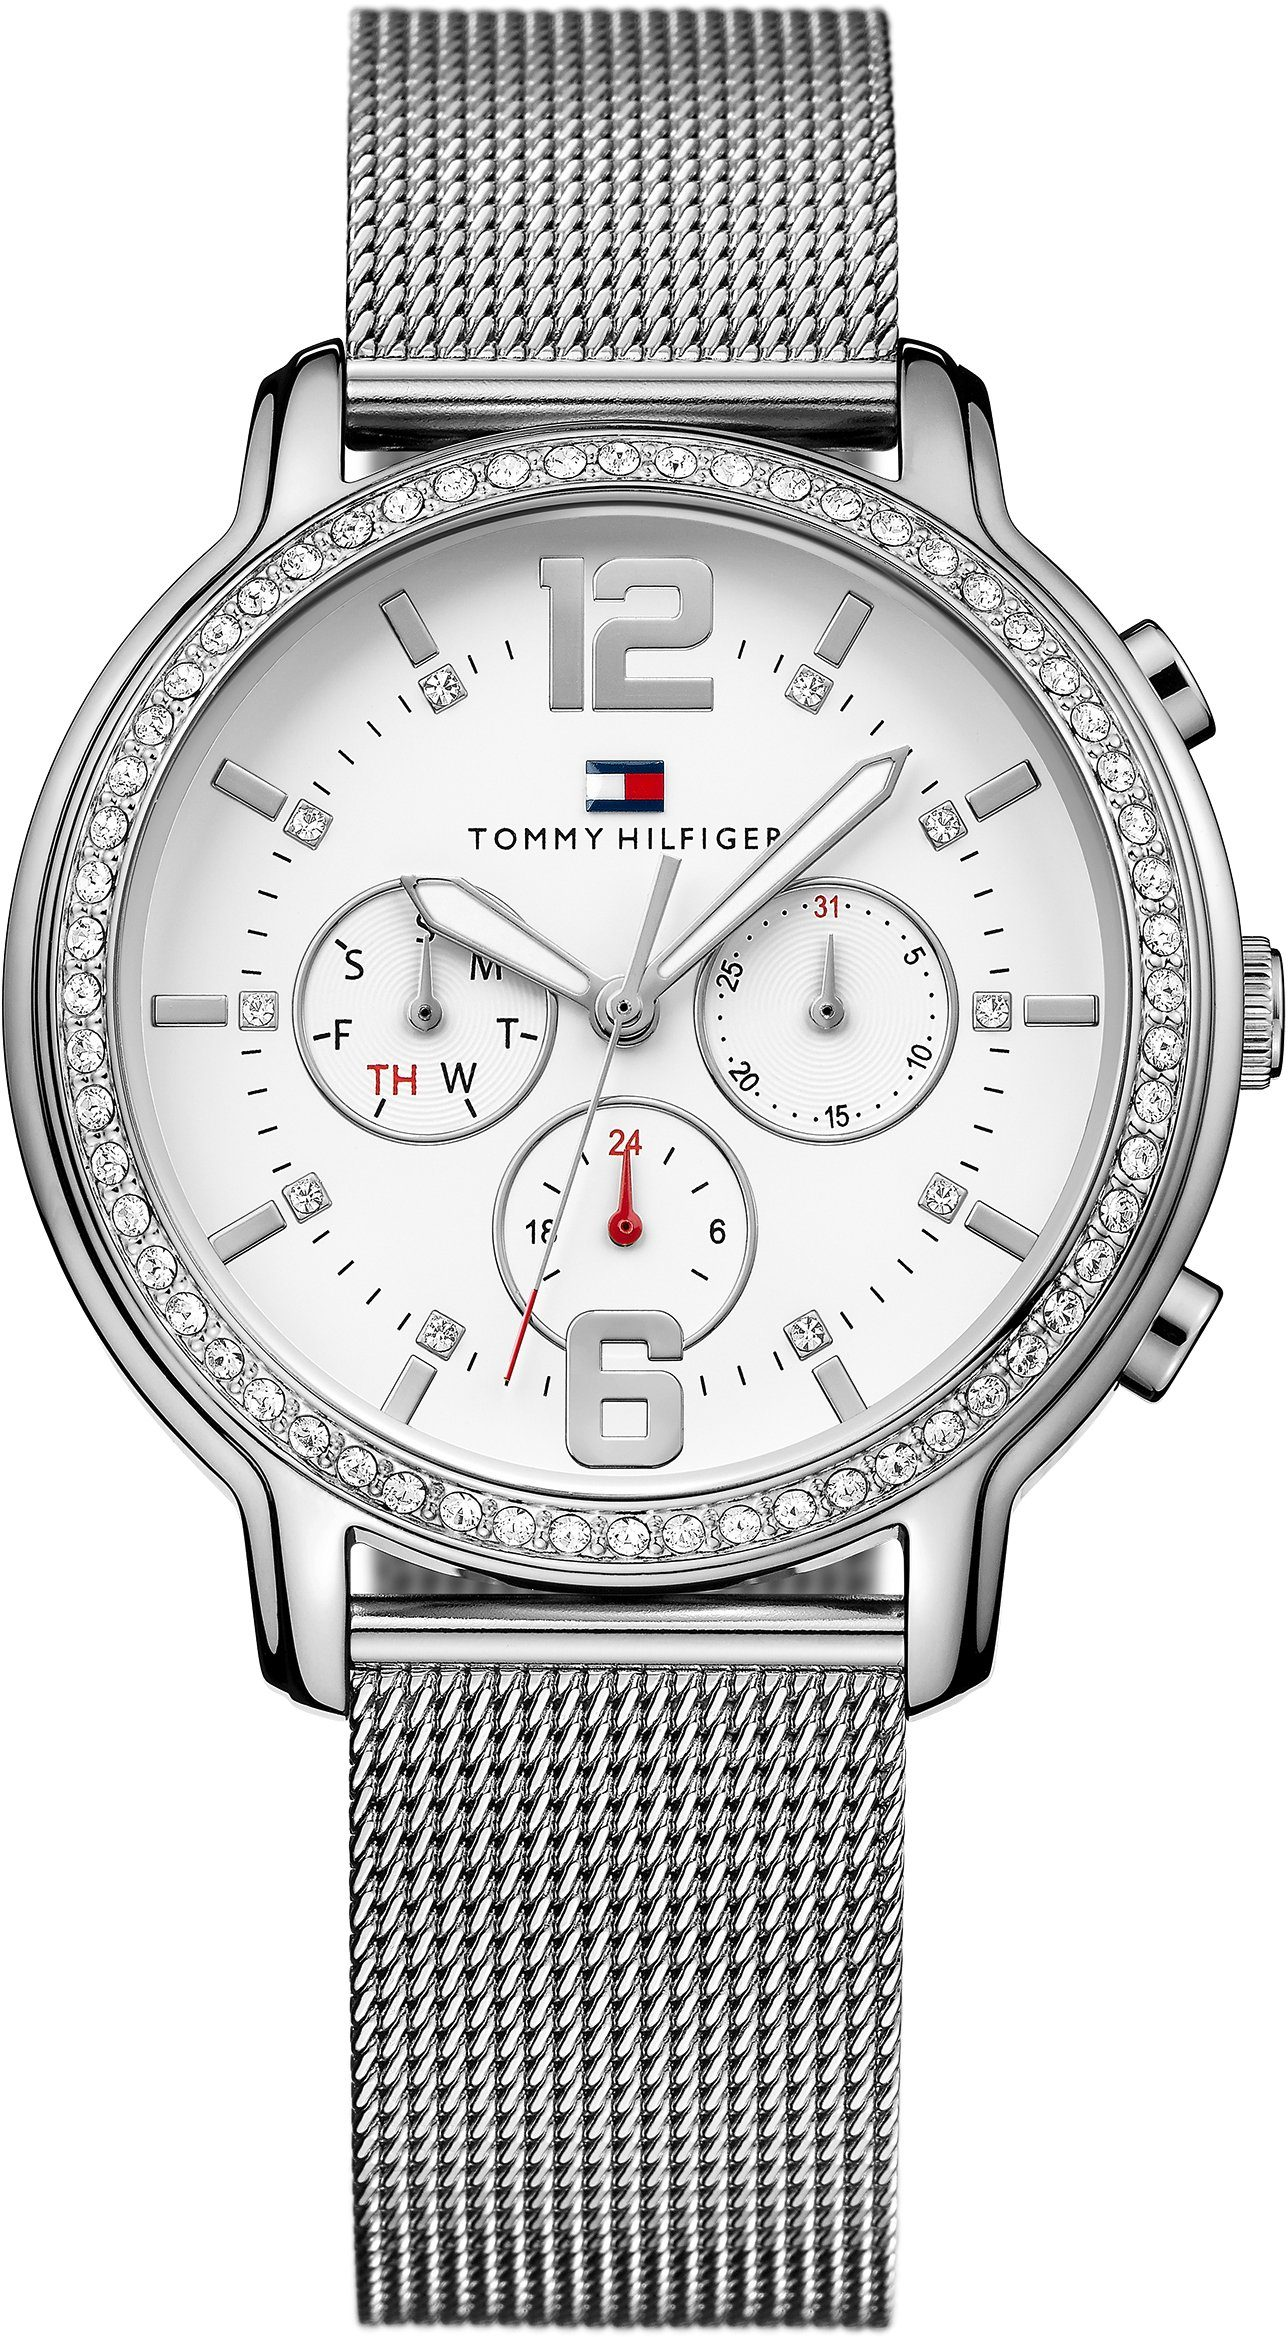 TOMMY HILFIGER Multifunktionsuhr »CASUAL SPORT, 1781659«